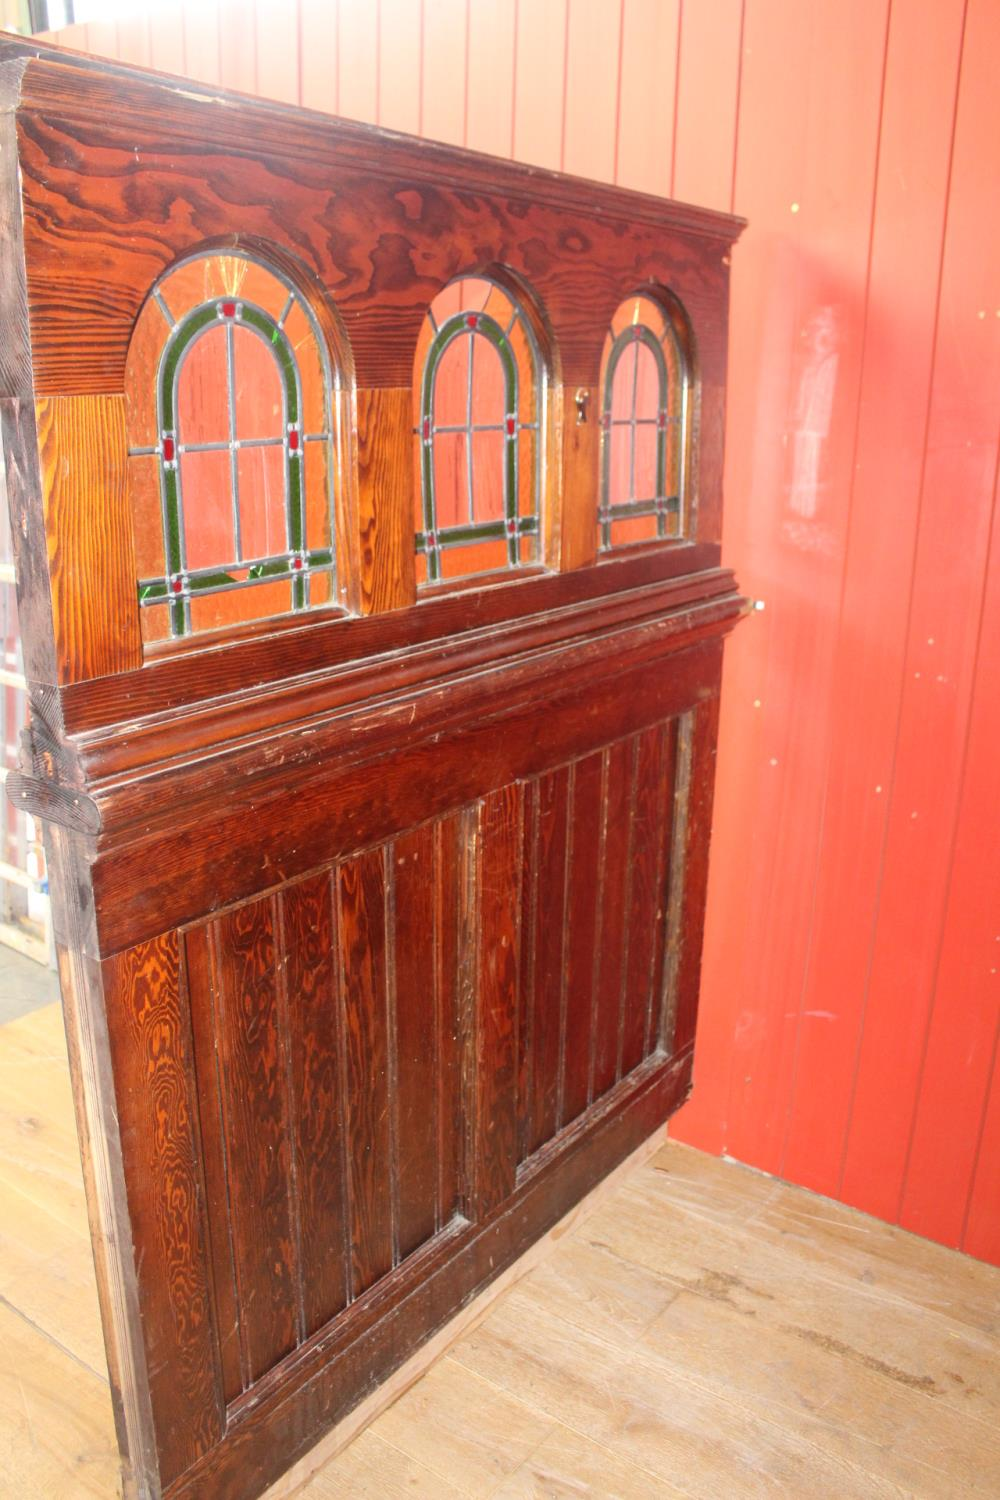 Wooden stained glass divider. - Image 2 of 3